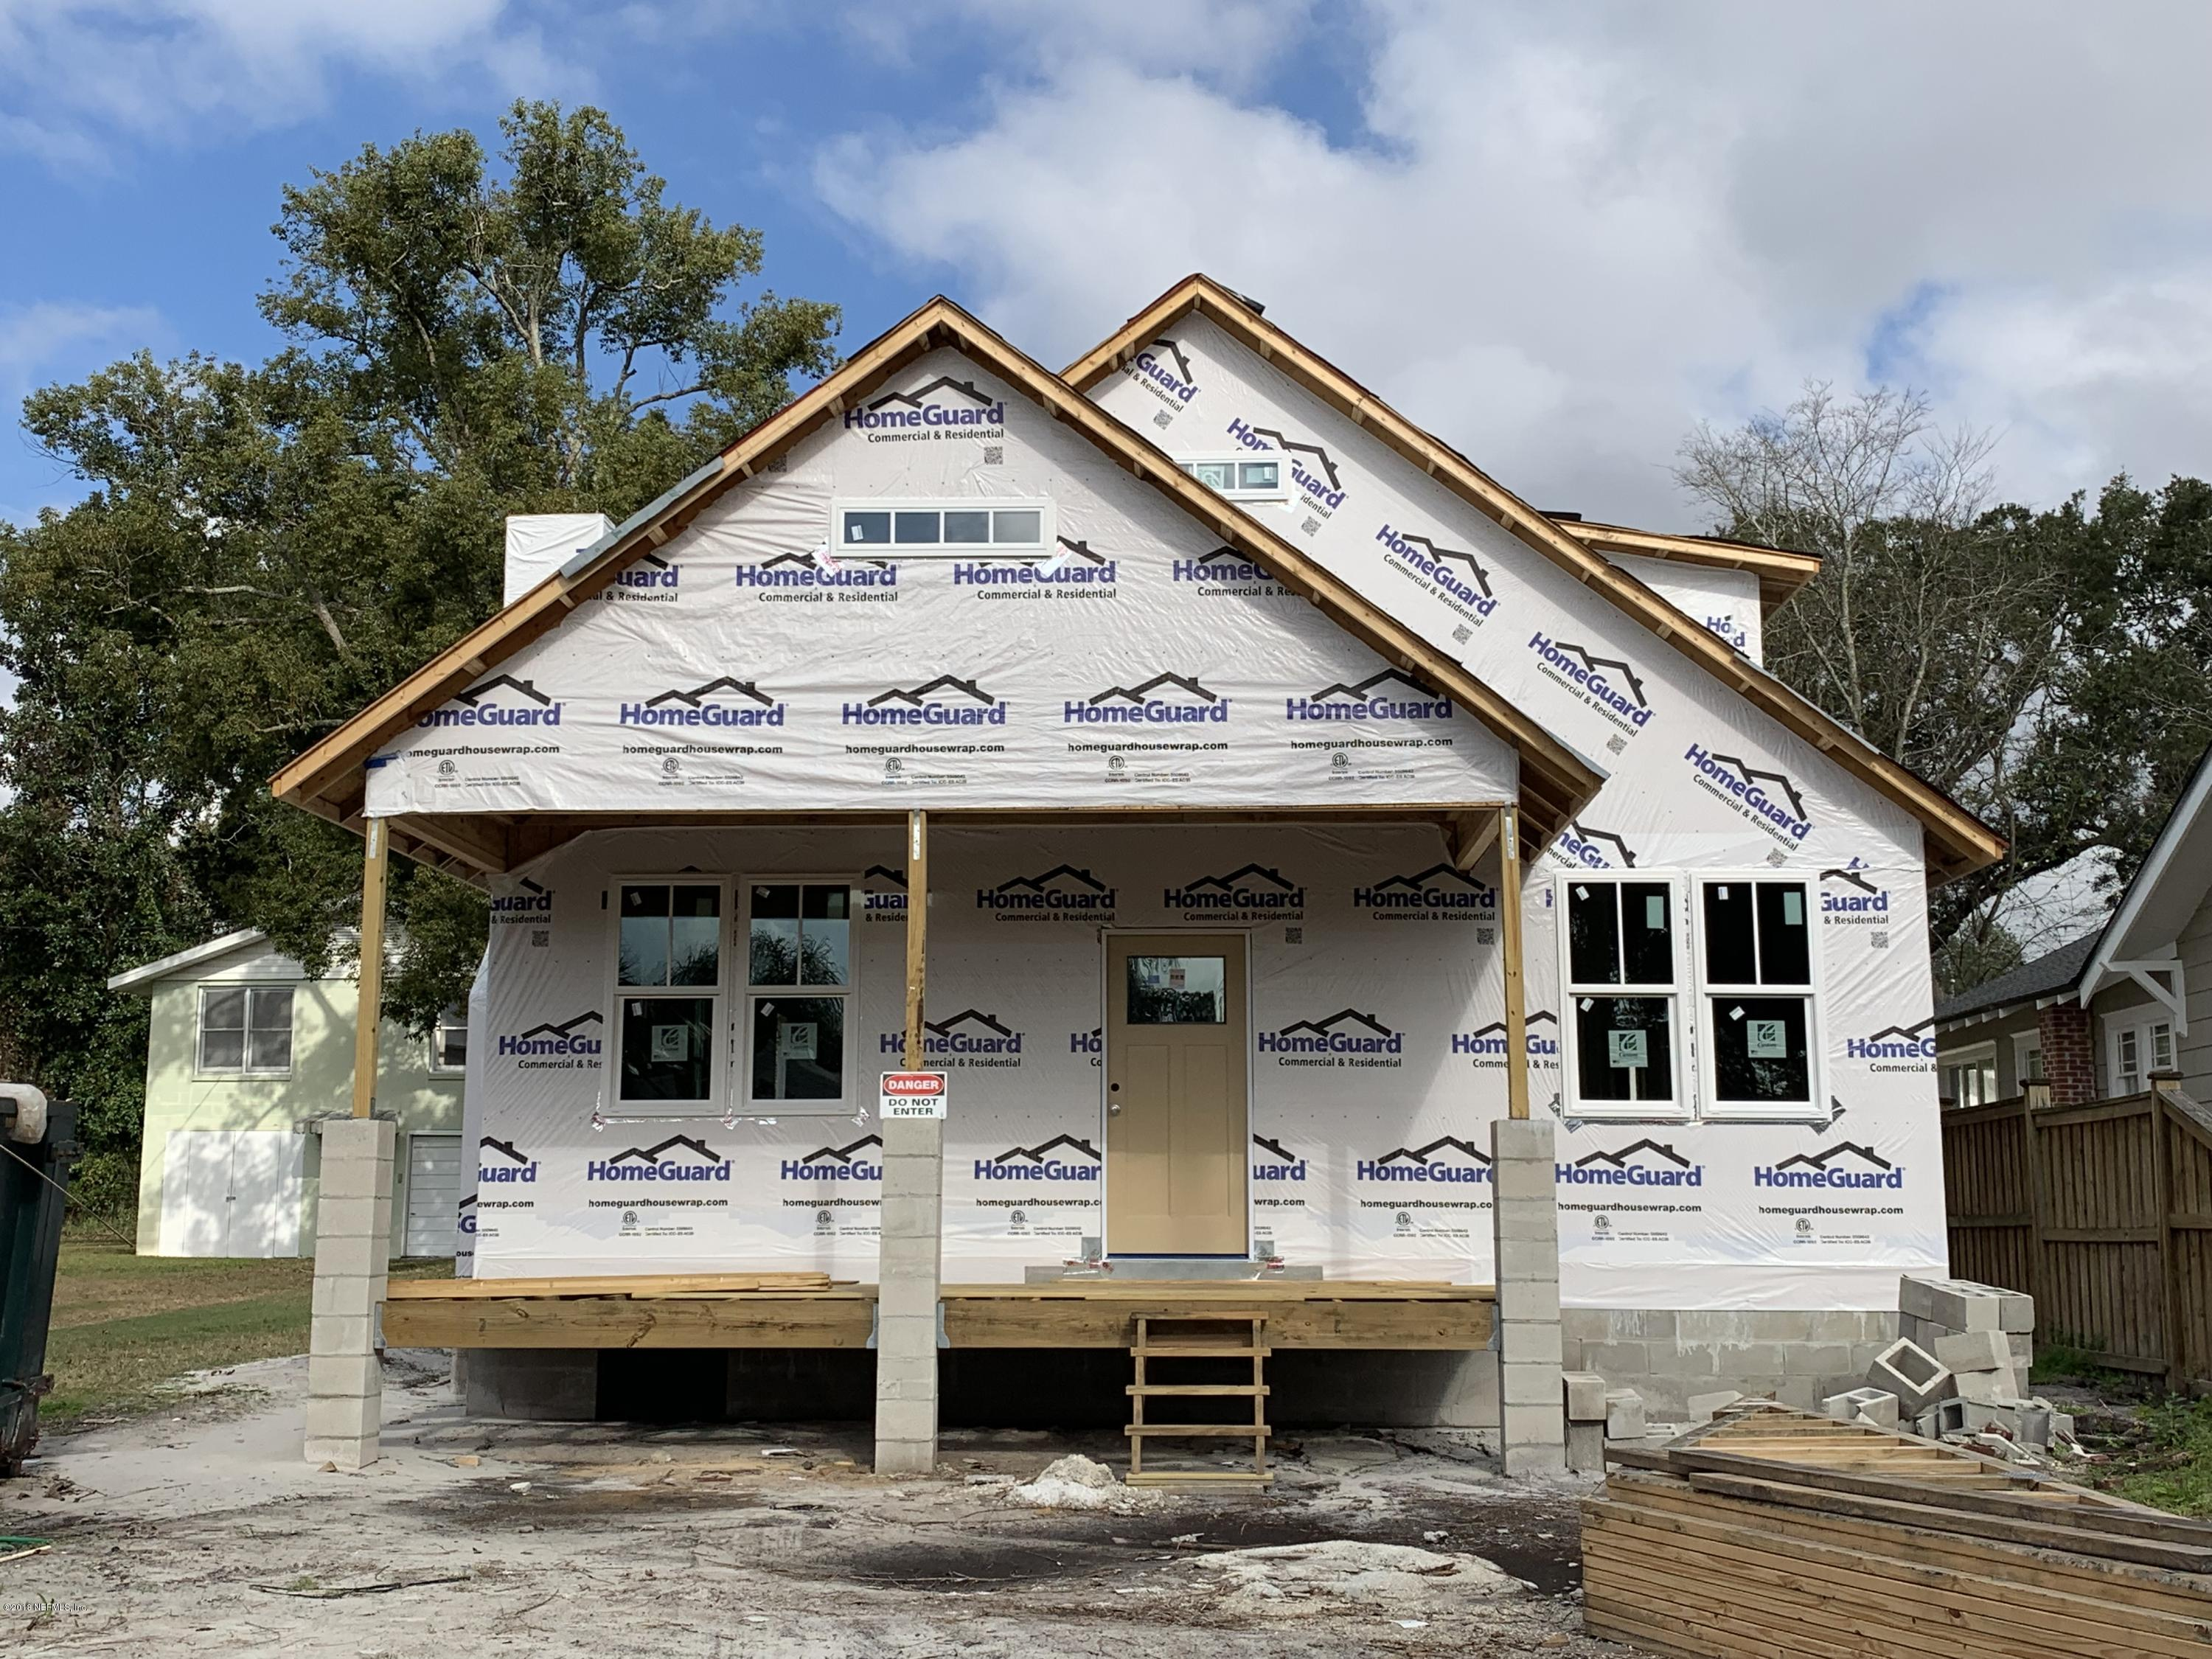 4335 MARQUETTE, JACKSONVILLE, FLORIDA 32210, 4 Bedrooms Bedrooms, ,3 BathroomsBathrooms,Residential - single family,For sale,MARQUETTE,951585